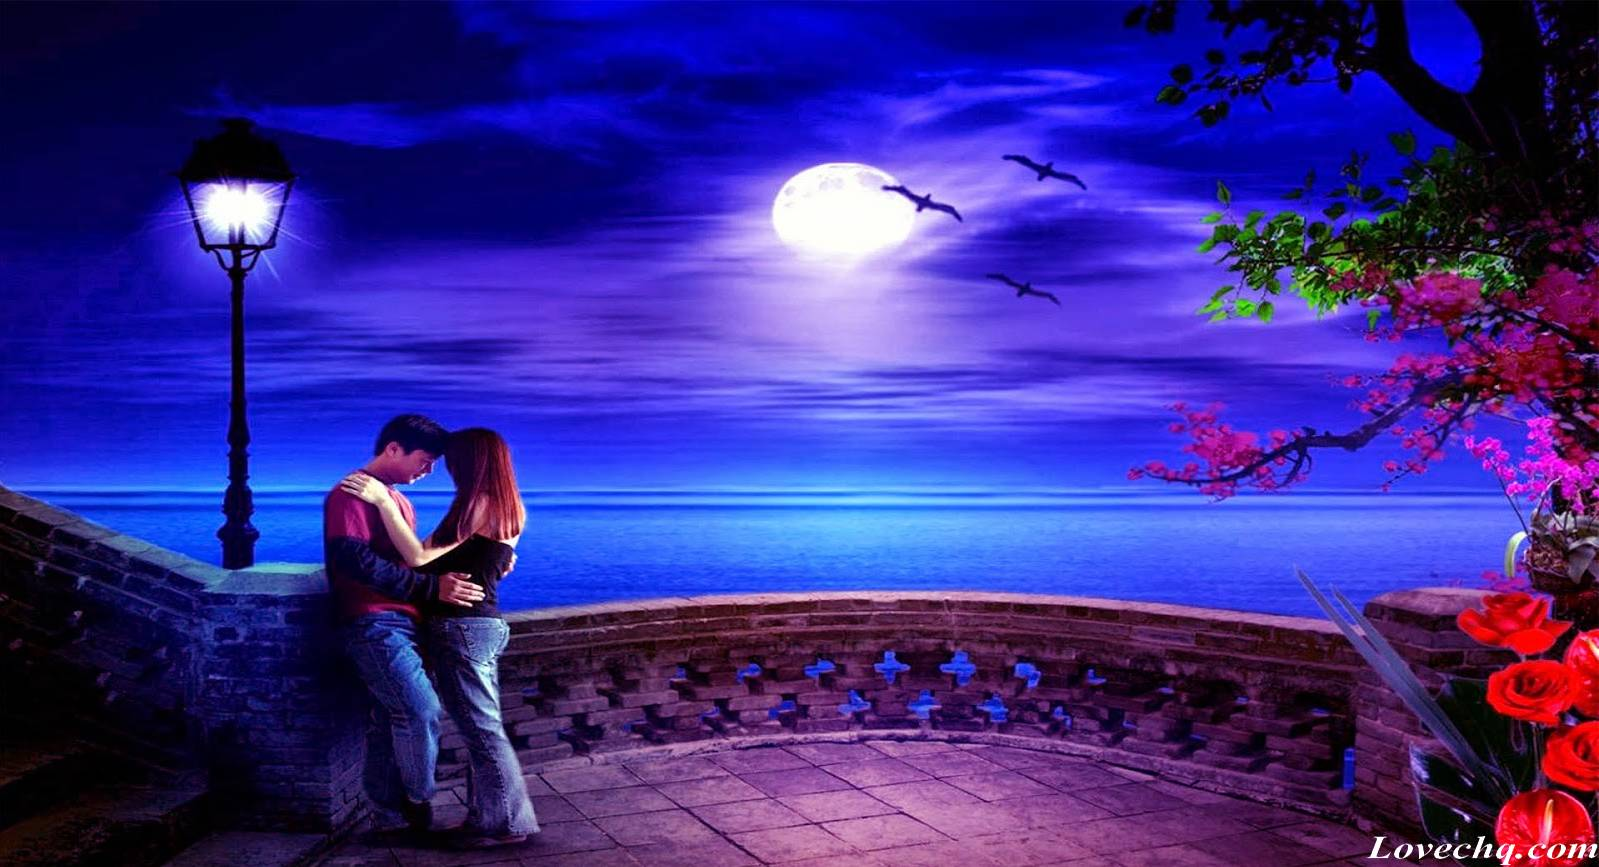 Romantic Love Hd Images Free Download 32 Background